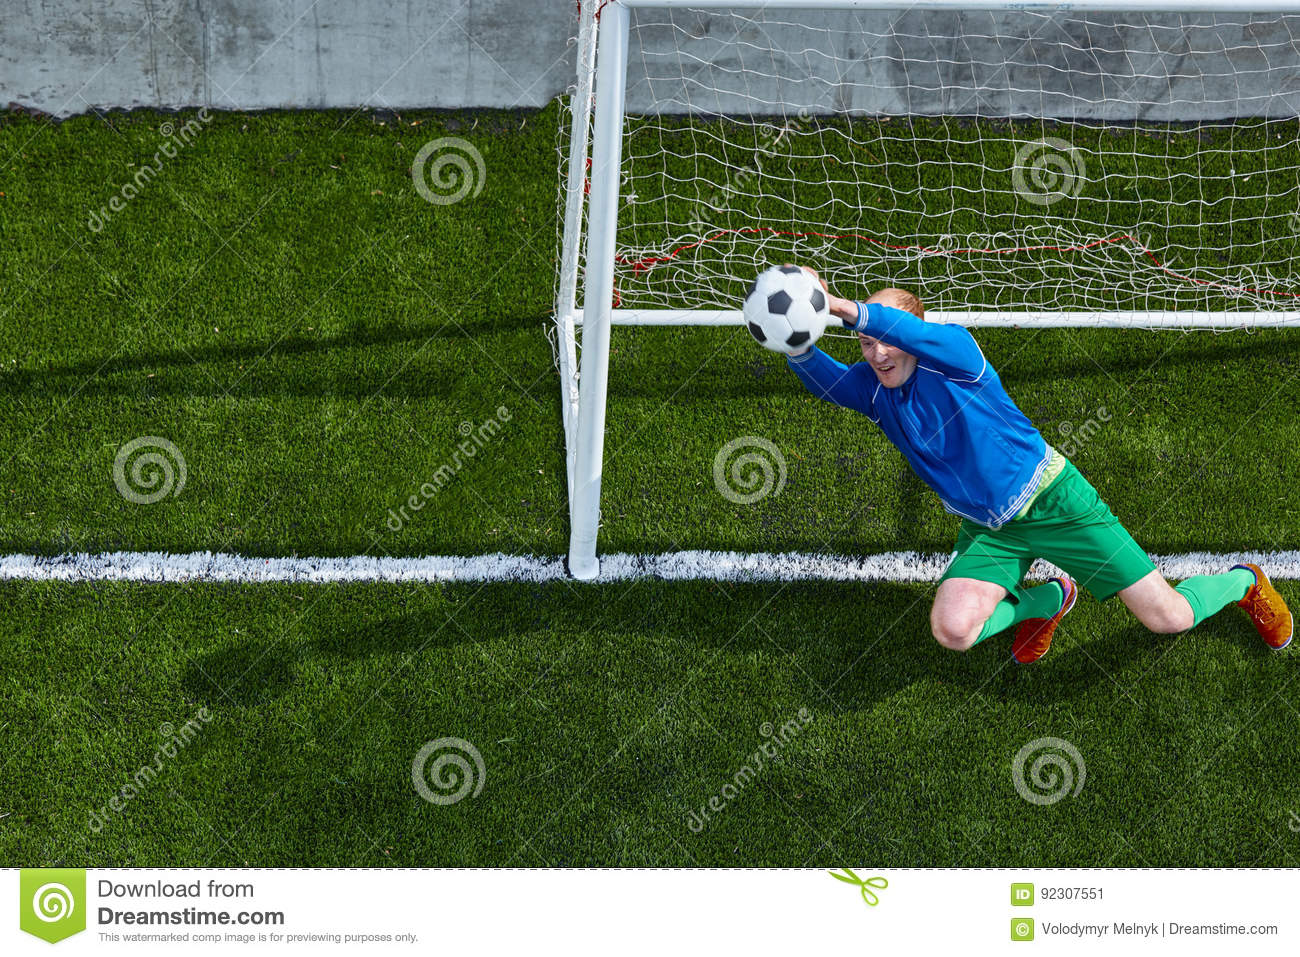 Download Soccer Football Goalkeeper Making Diving Save Stock Image - Image of goalie, grass: 92307551